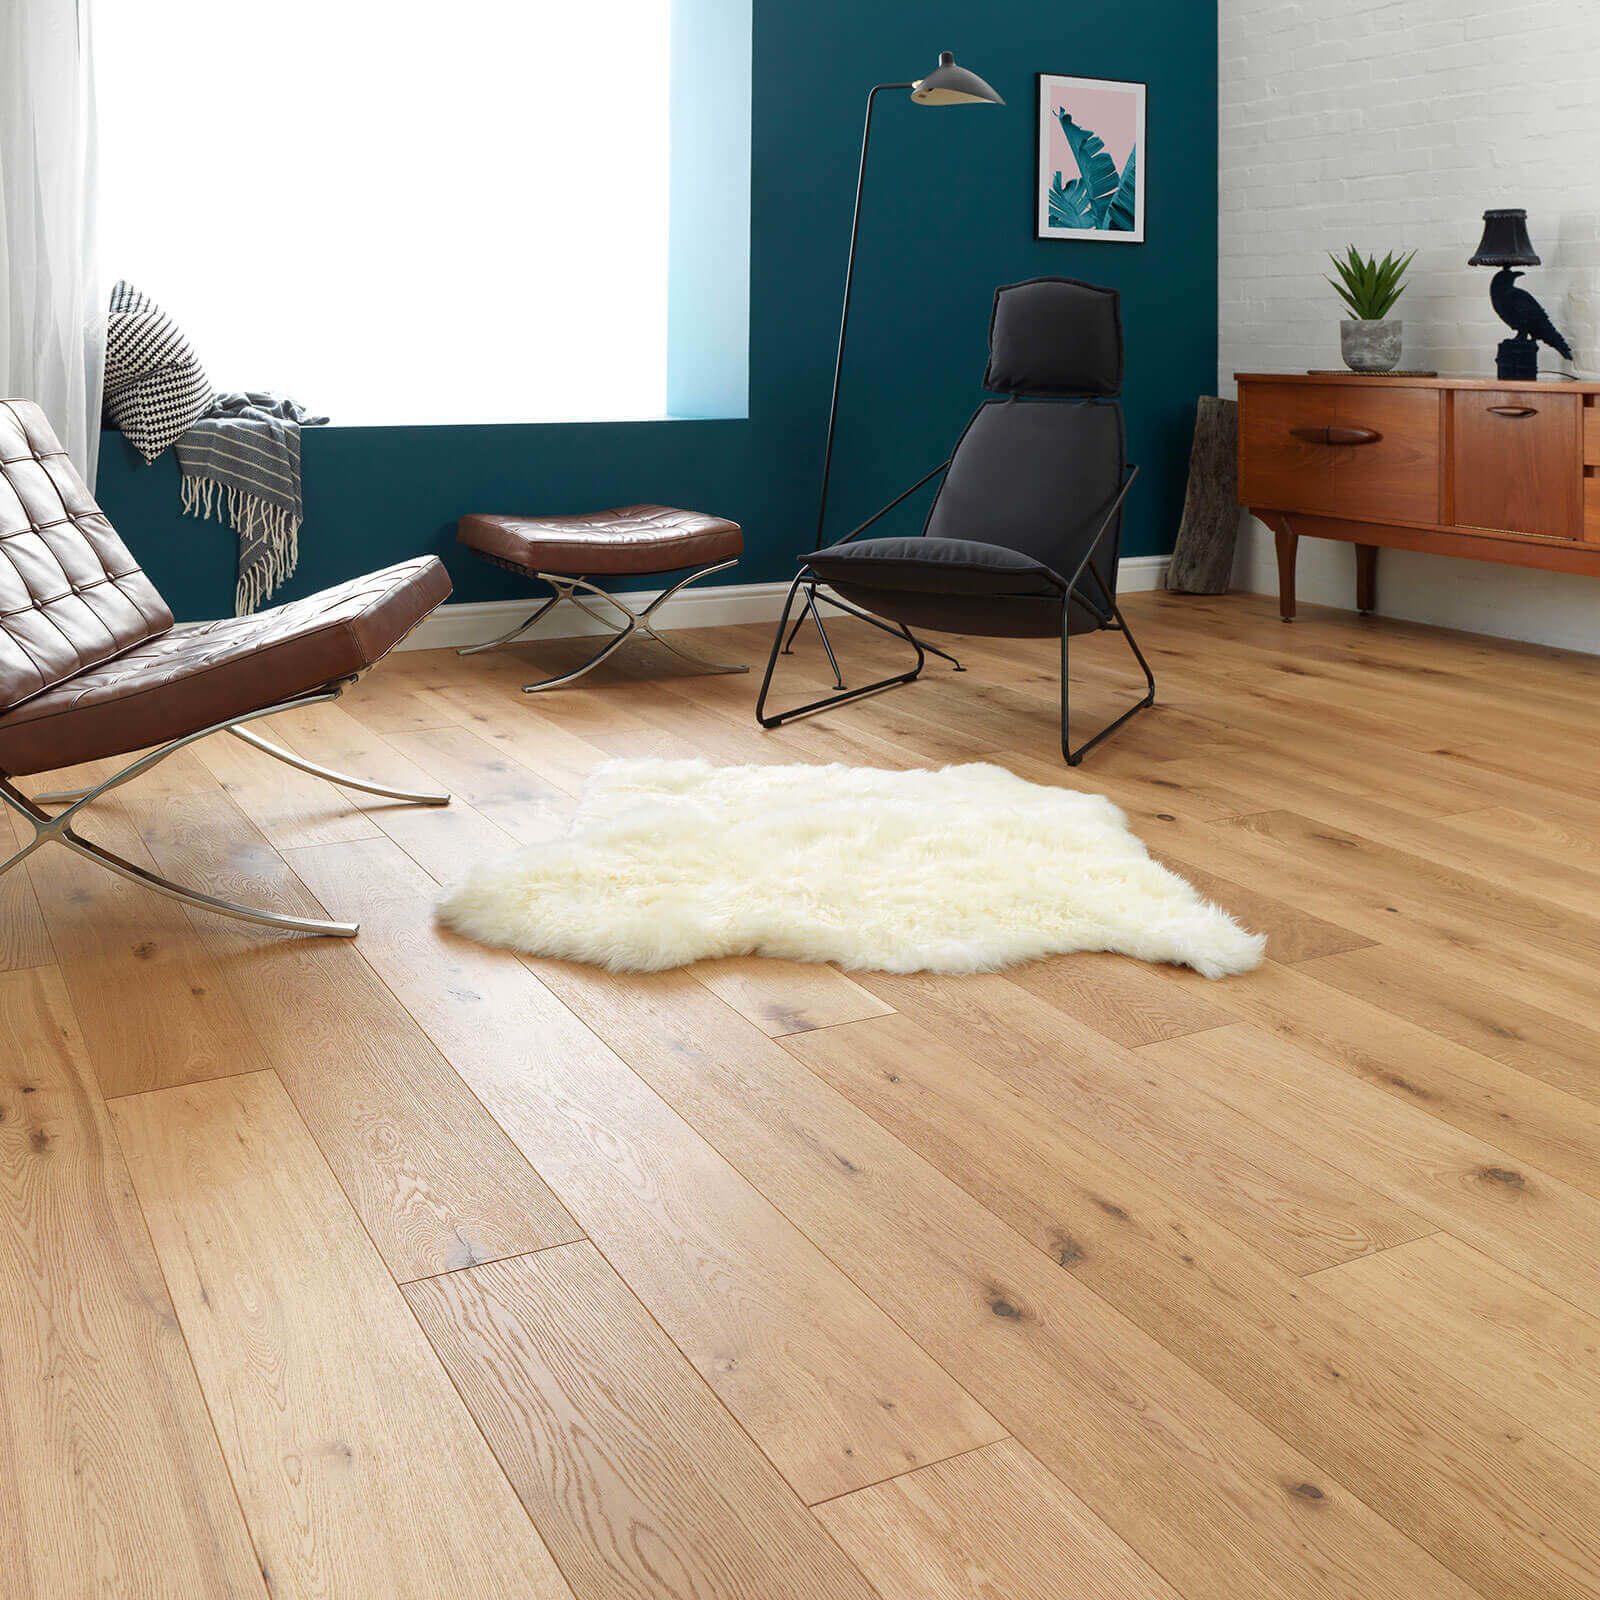 Woodpecker Chepstow Rustic Oak WIDE Brushed & Oiled Engineered Wood Flooring 240mm 65-HBO-002